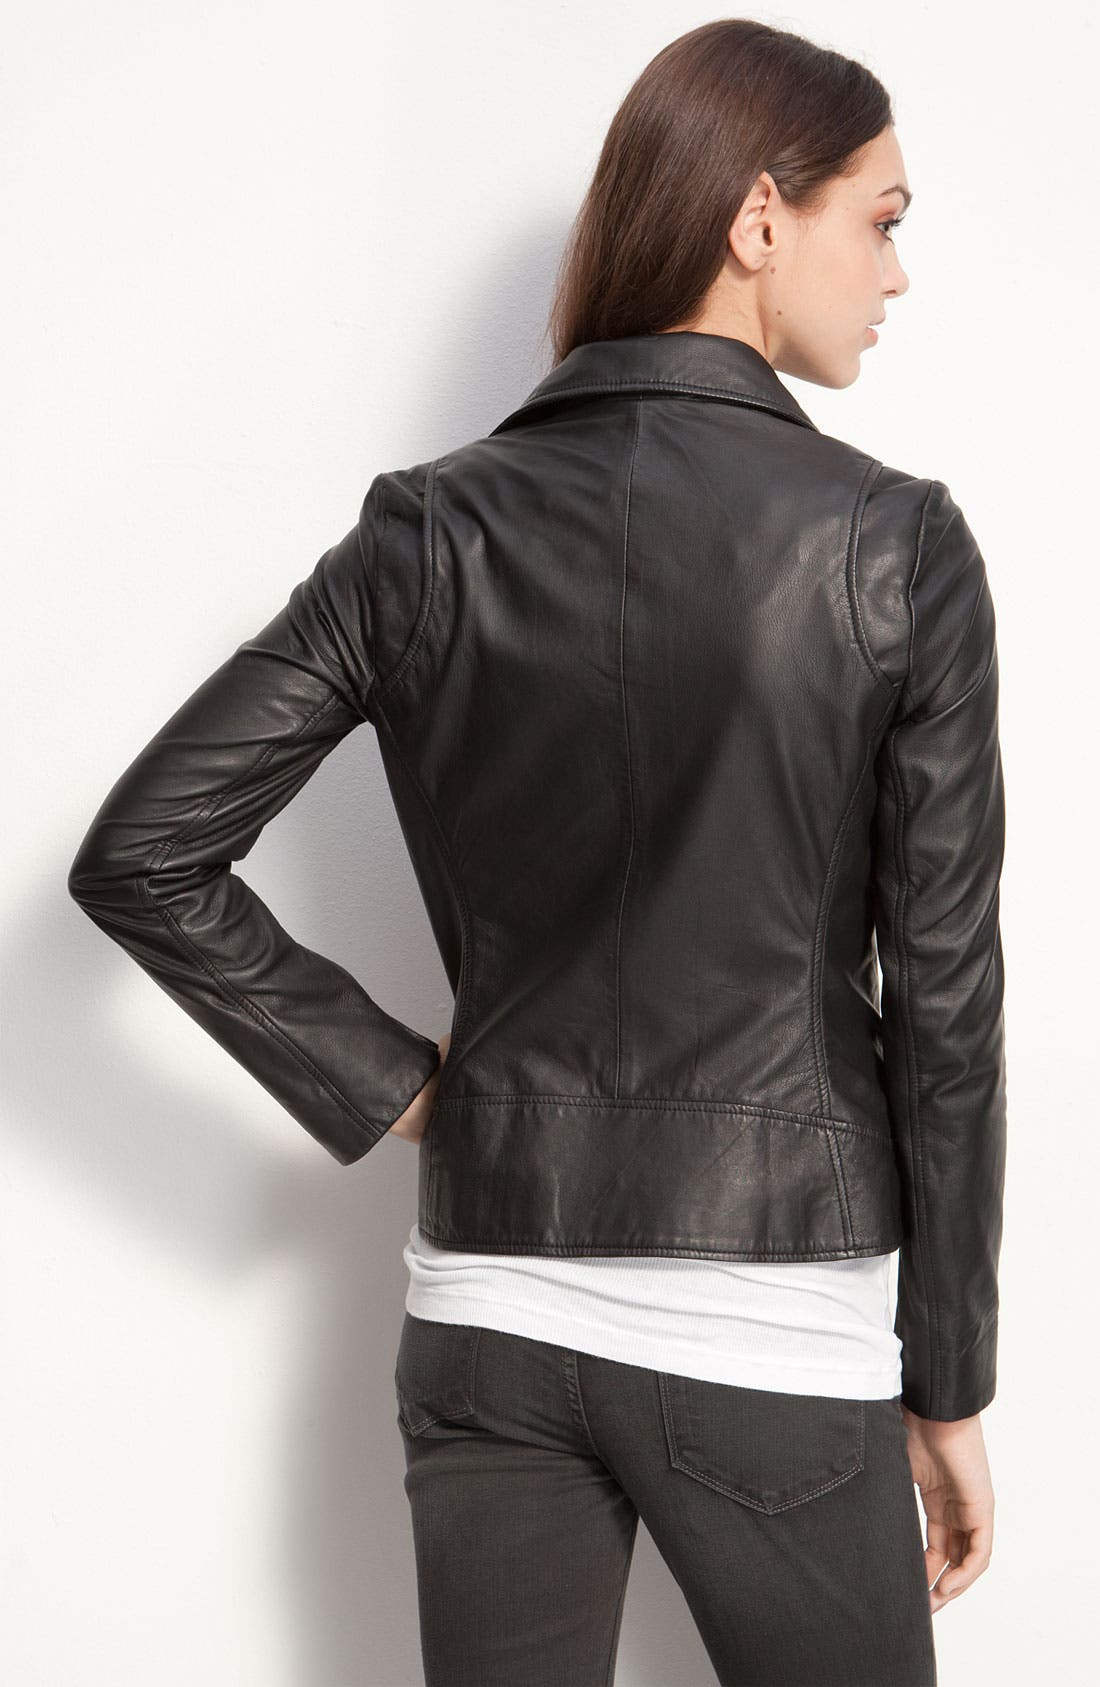 Kenna-T Classic Leather Moto Jacket,                             Alternate thumbnail 4, color,                             001